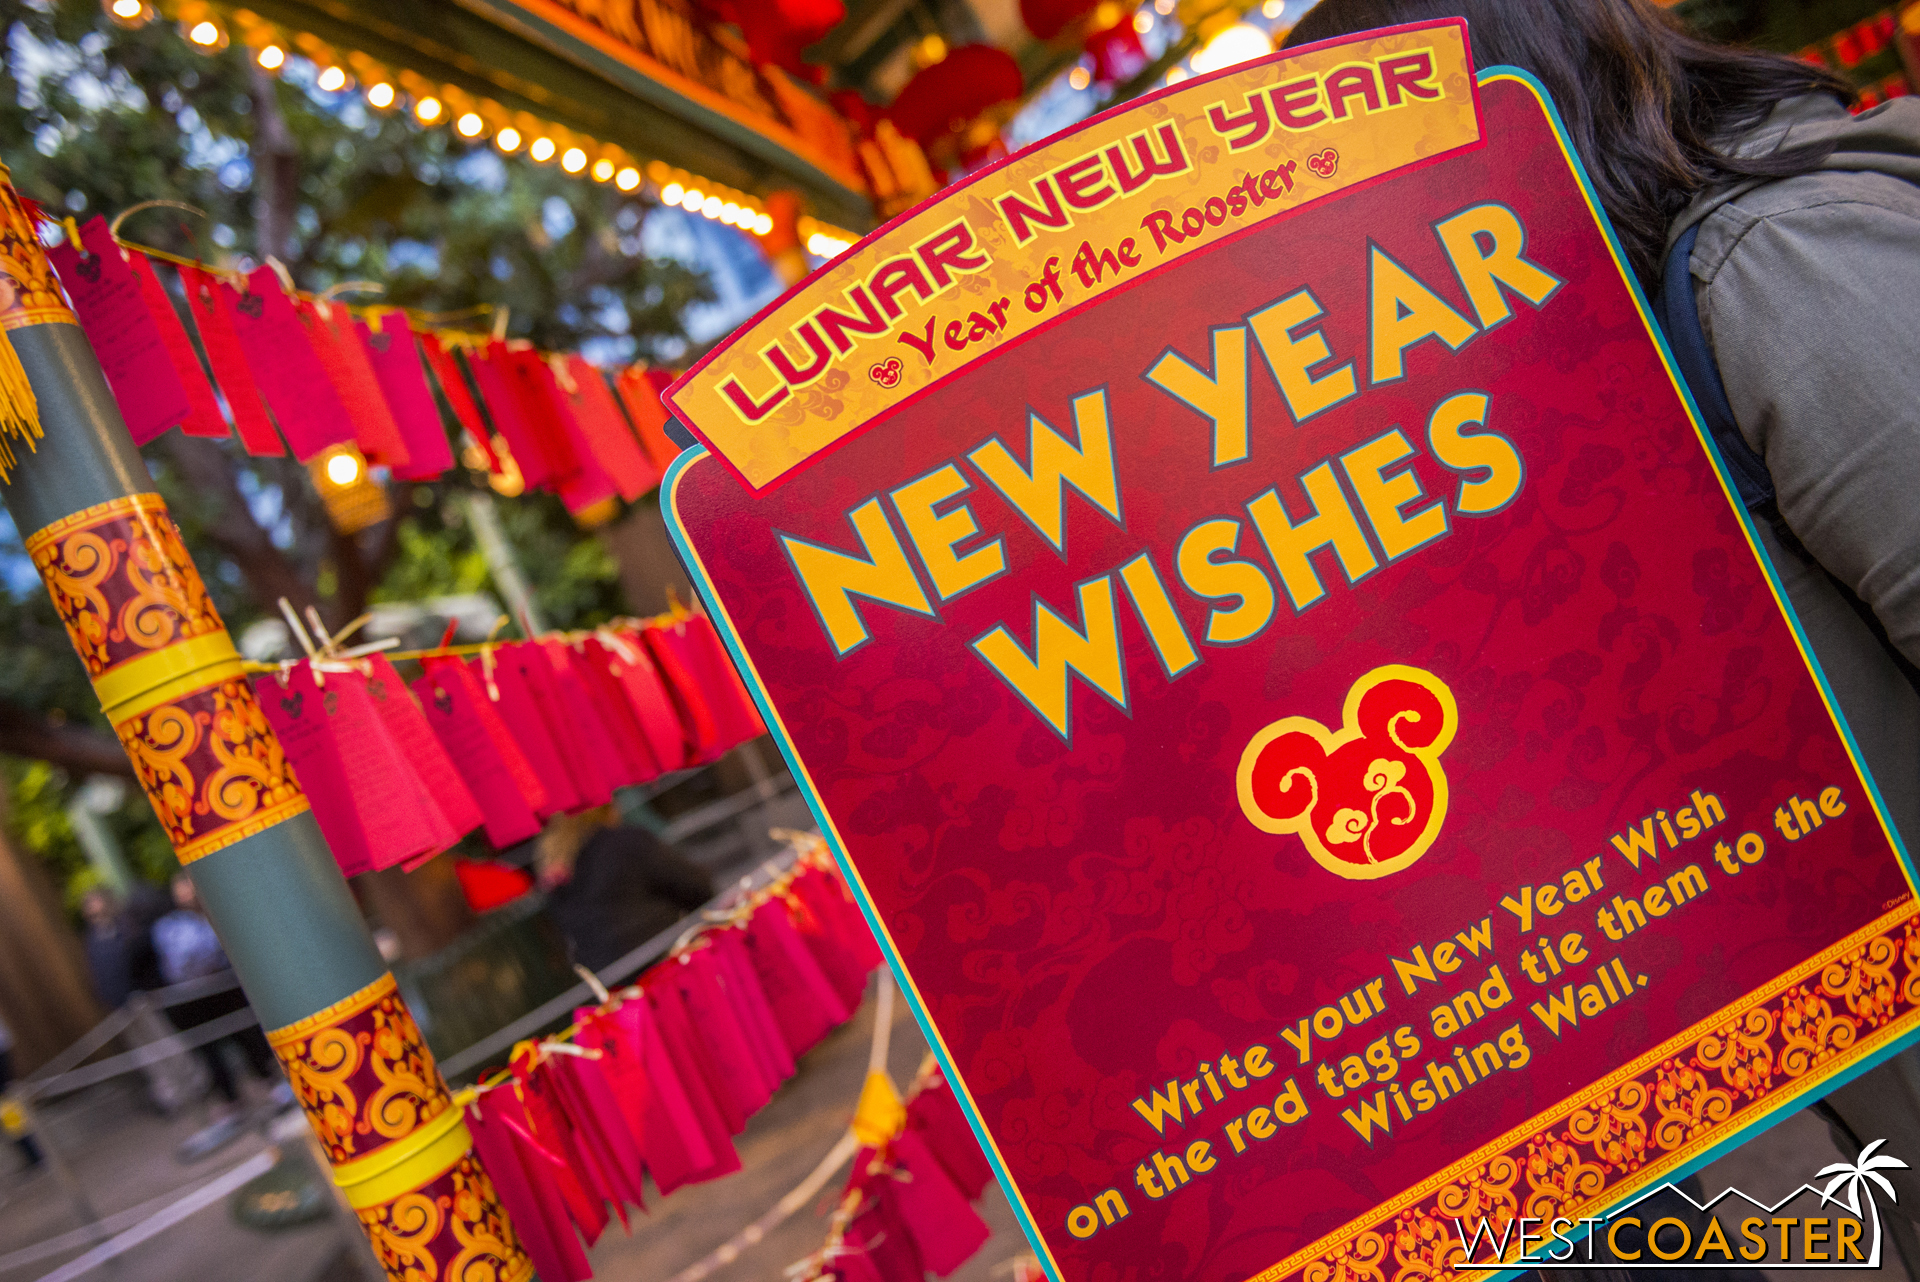 Guests can also write wishes on red tags and hang them for good fortune.